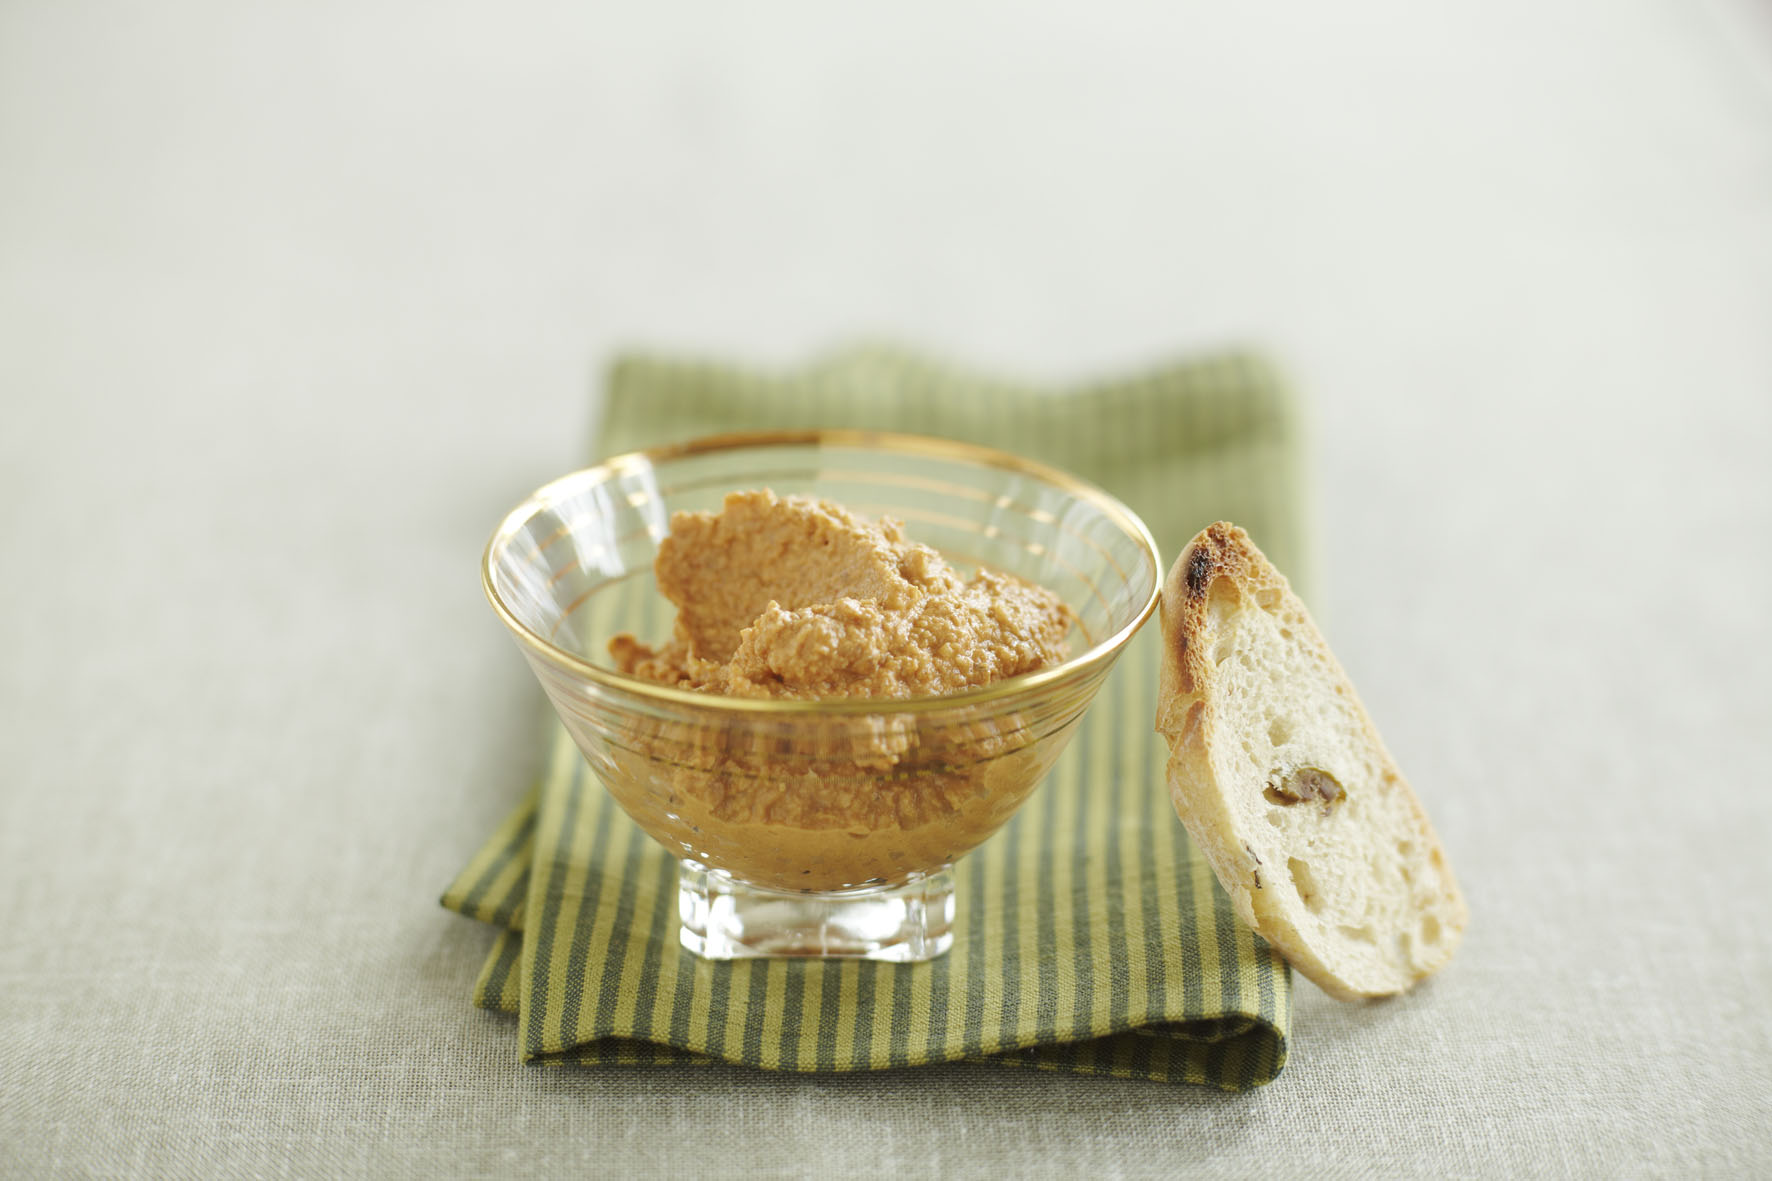 Recipe: Hummus with red peppers and walnuts